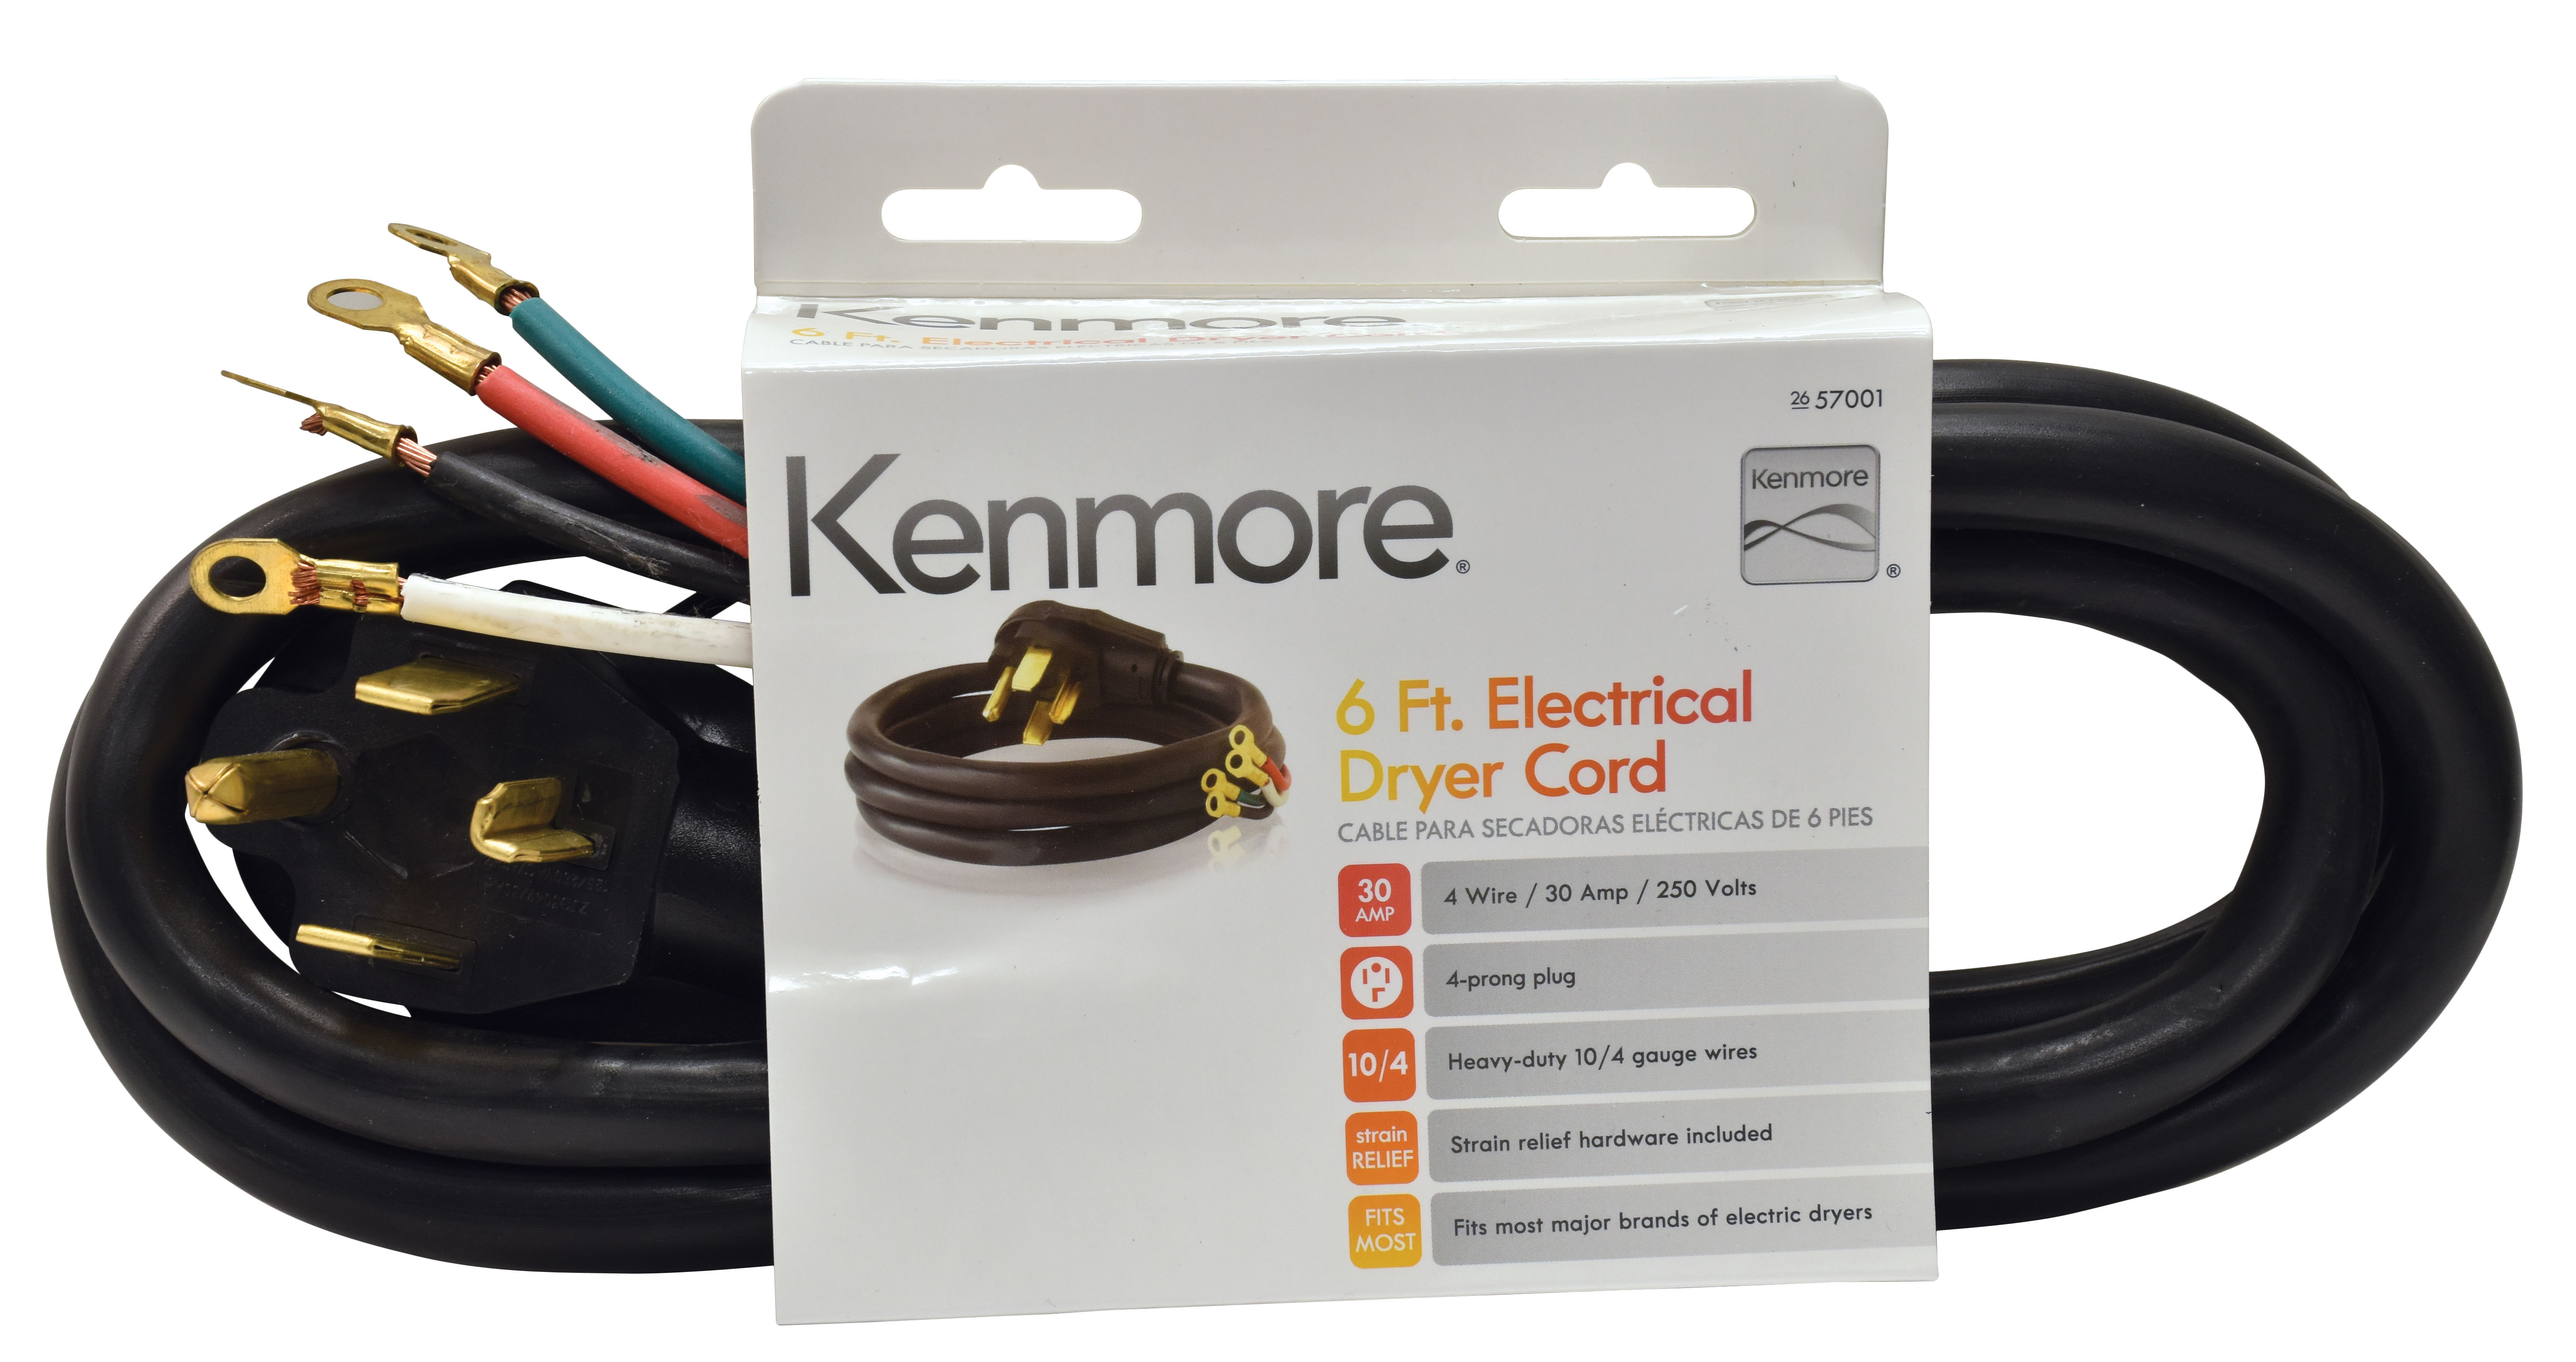 Kenmore 99921 57001 4Prong 6' Round Dryer Cord – Black